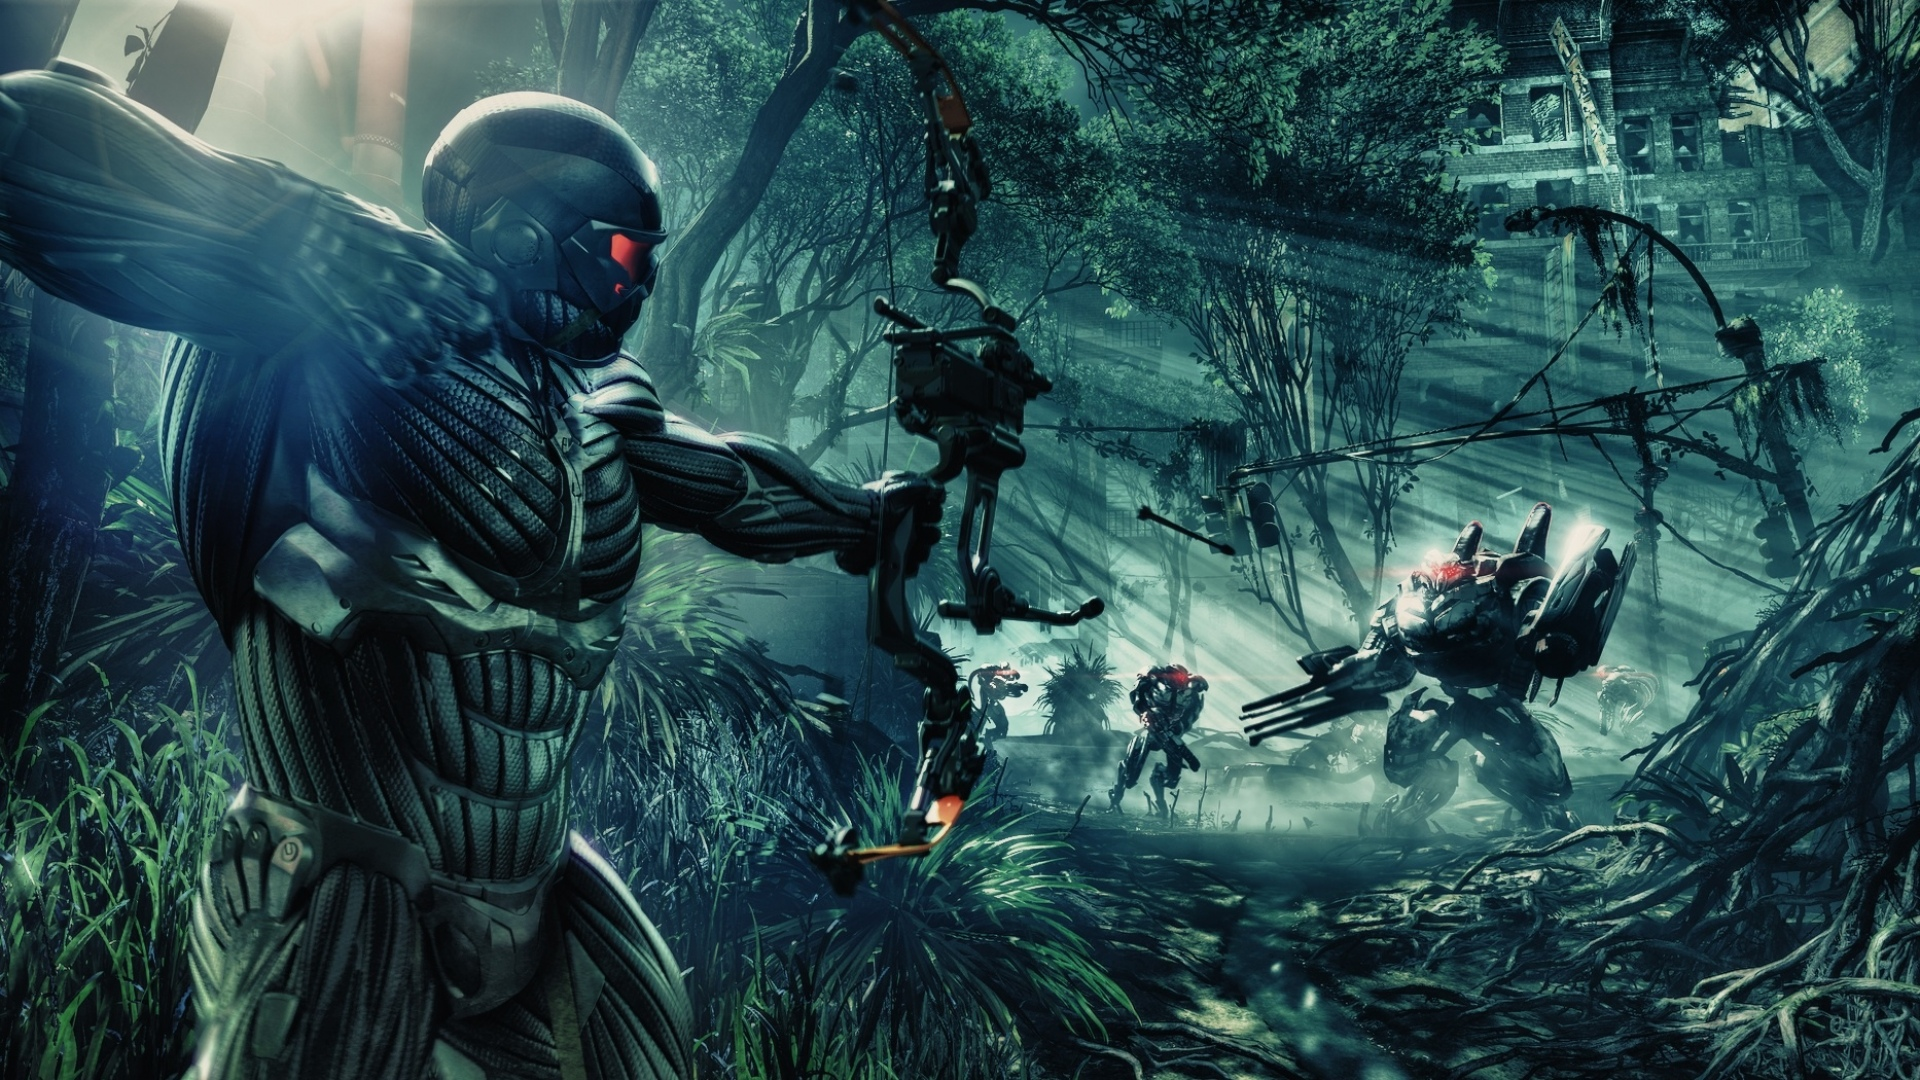 Crysis 3 2013 Video Game 4k Hd Desktop Wallpaper For 4k: Crysis Wallpaper